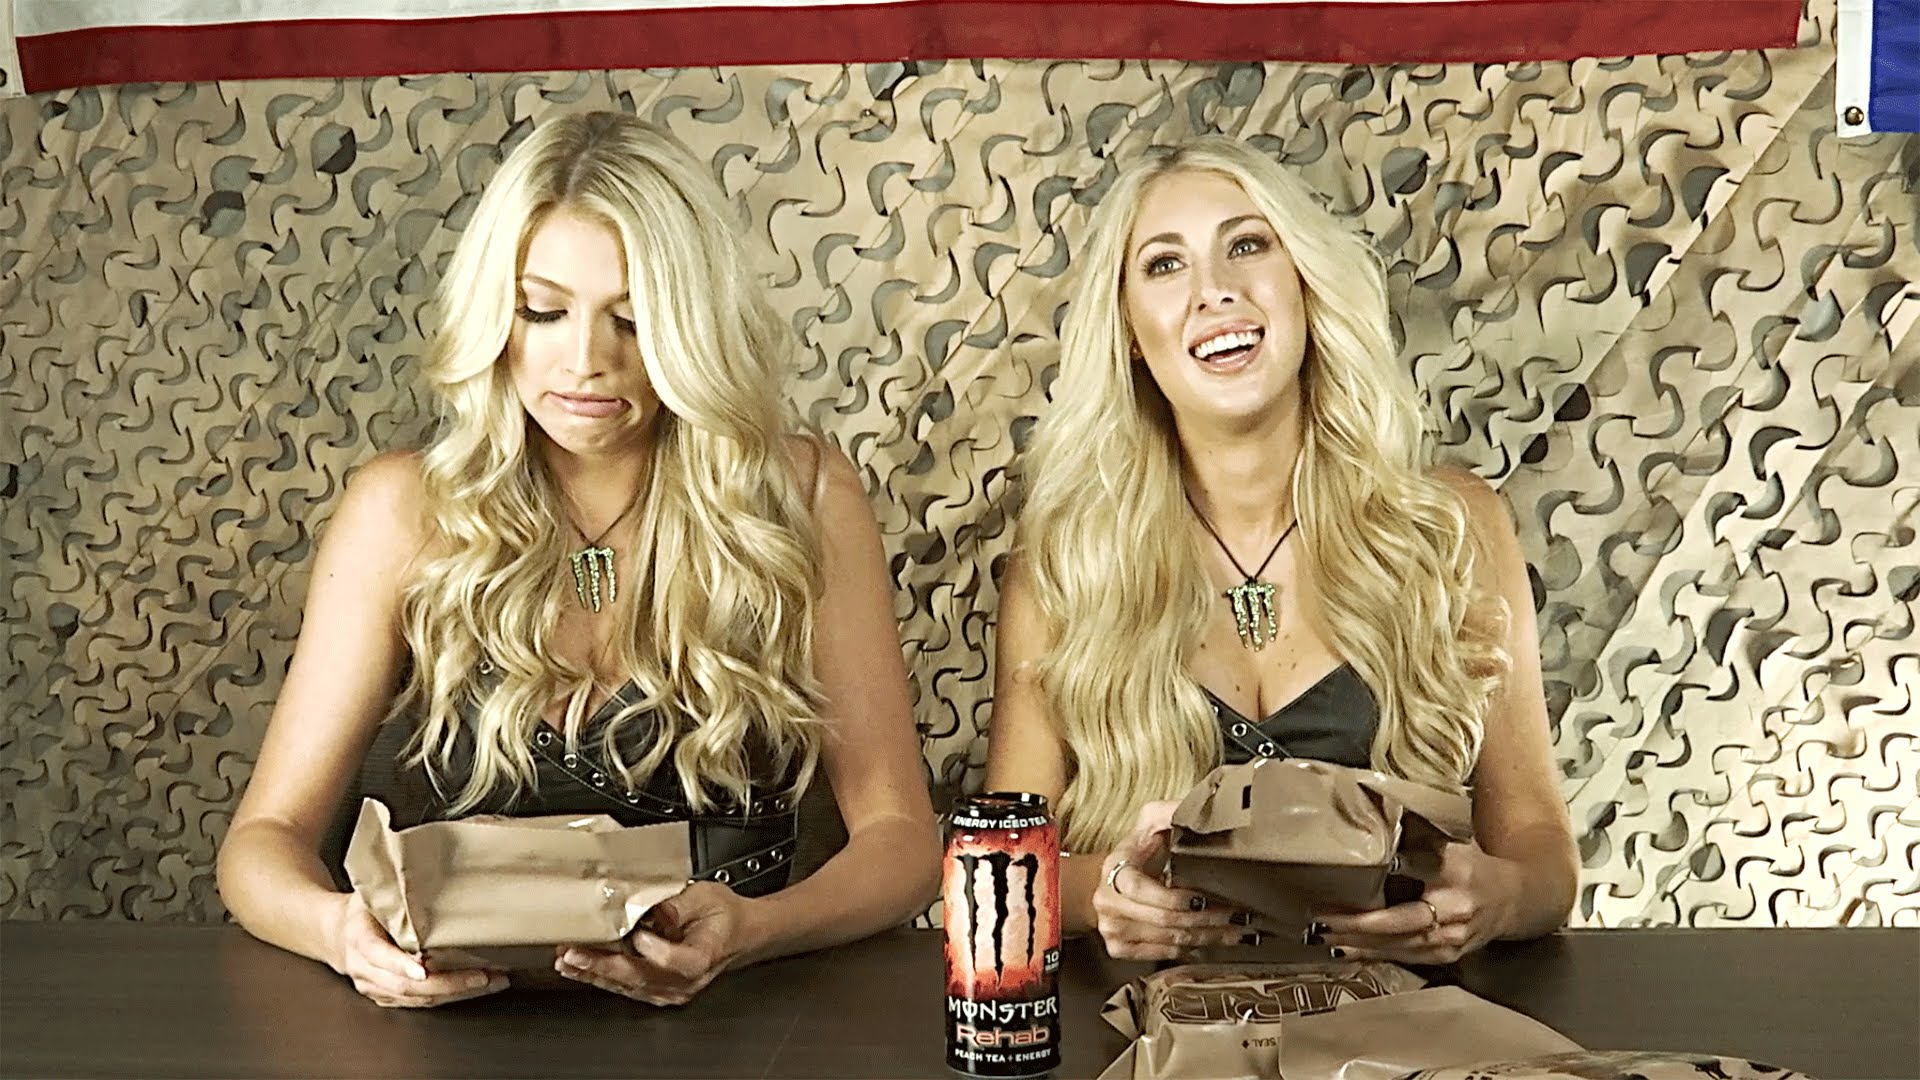 monster energy girls try military food badchix magazine. Black Bedroom Furniture Sets. Home Design Ideas